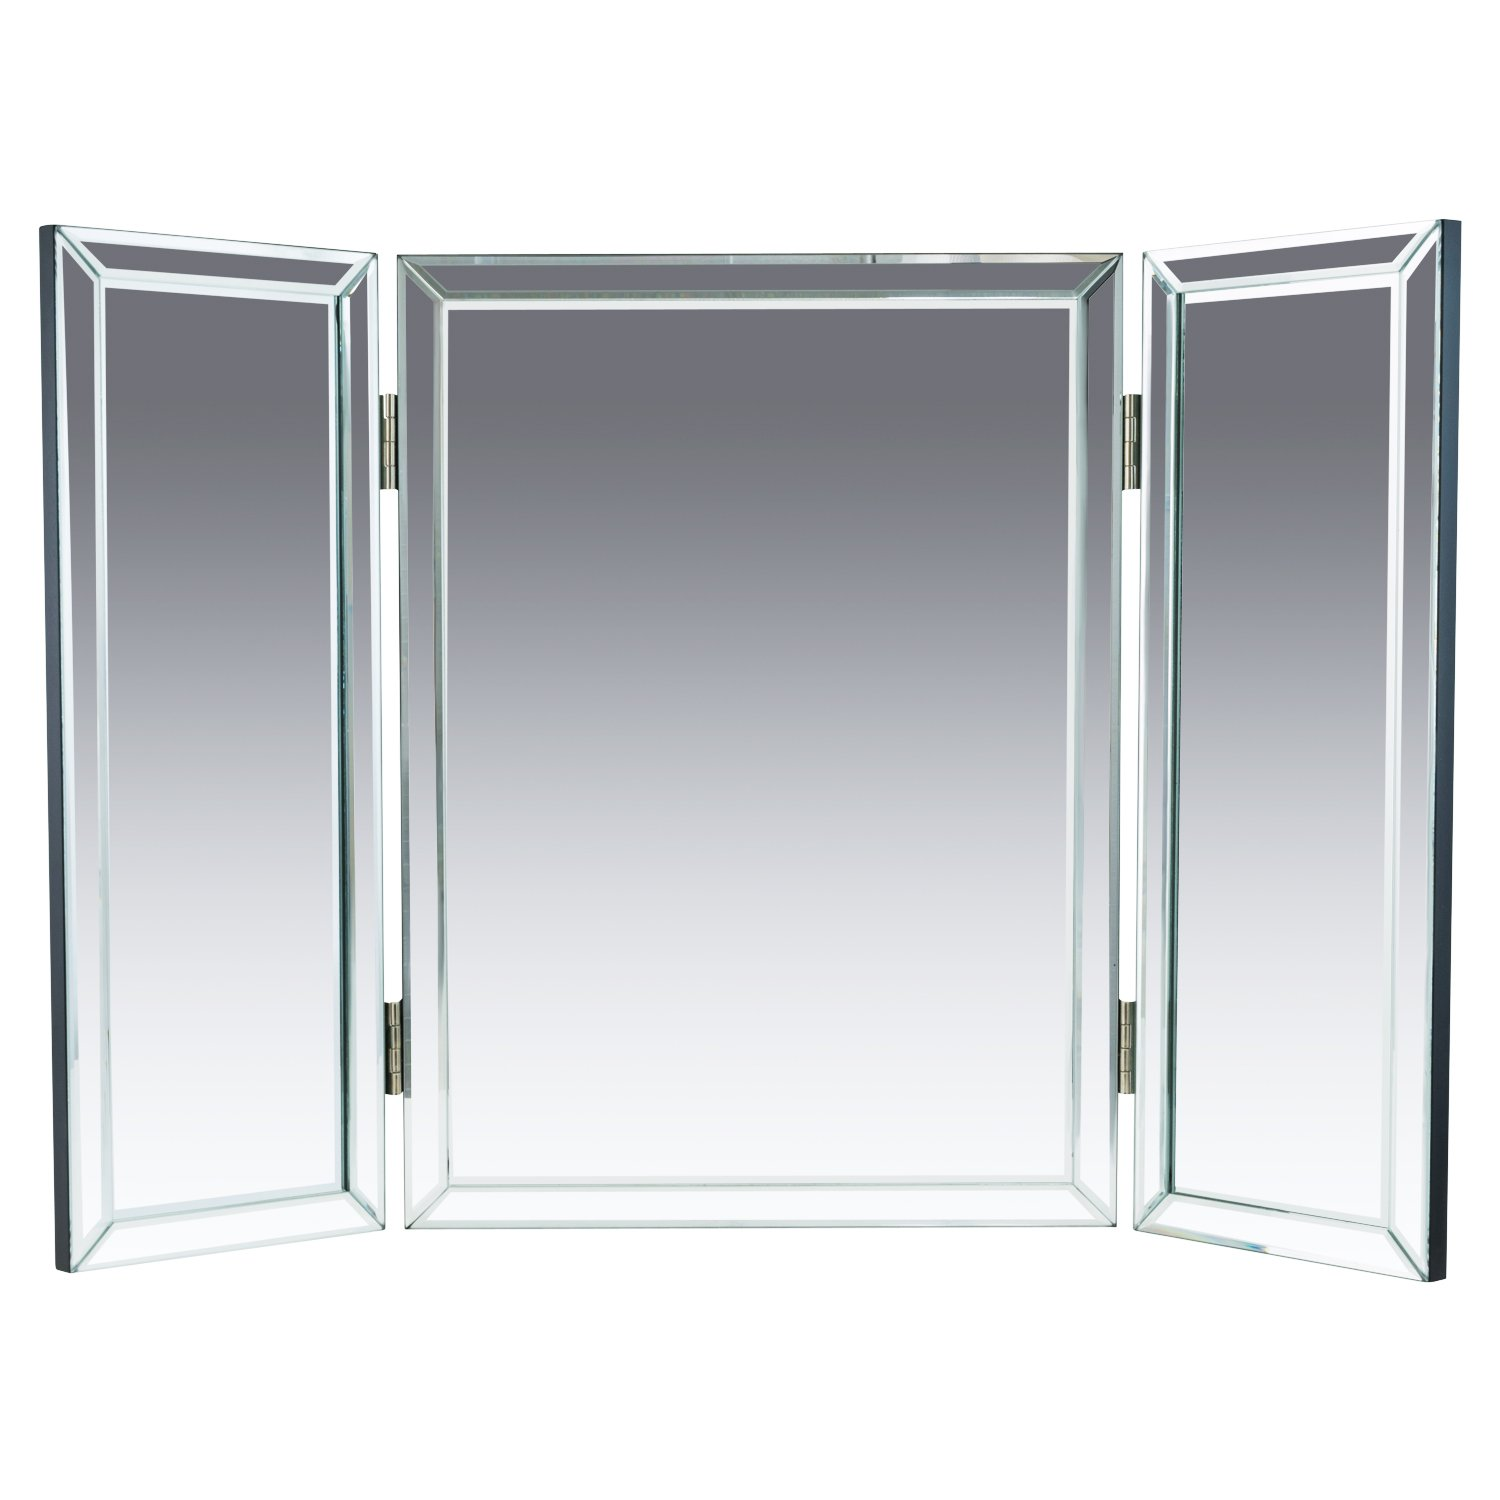 Houseables Trifold Vanity Mirror, 3 Way, 31'' x 1'' x 21'', Single, Tri Fold, Big Mirrors For Tables, Bedrooms, Bathroom, Makeup, Tabletop, Centerpiece, Three Part, With Beveled Edges by Houseables